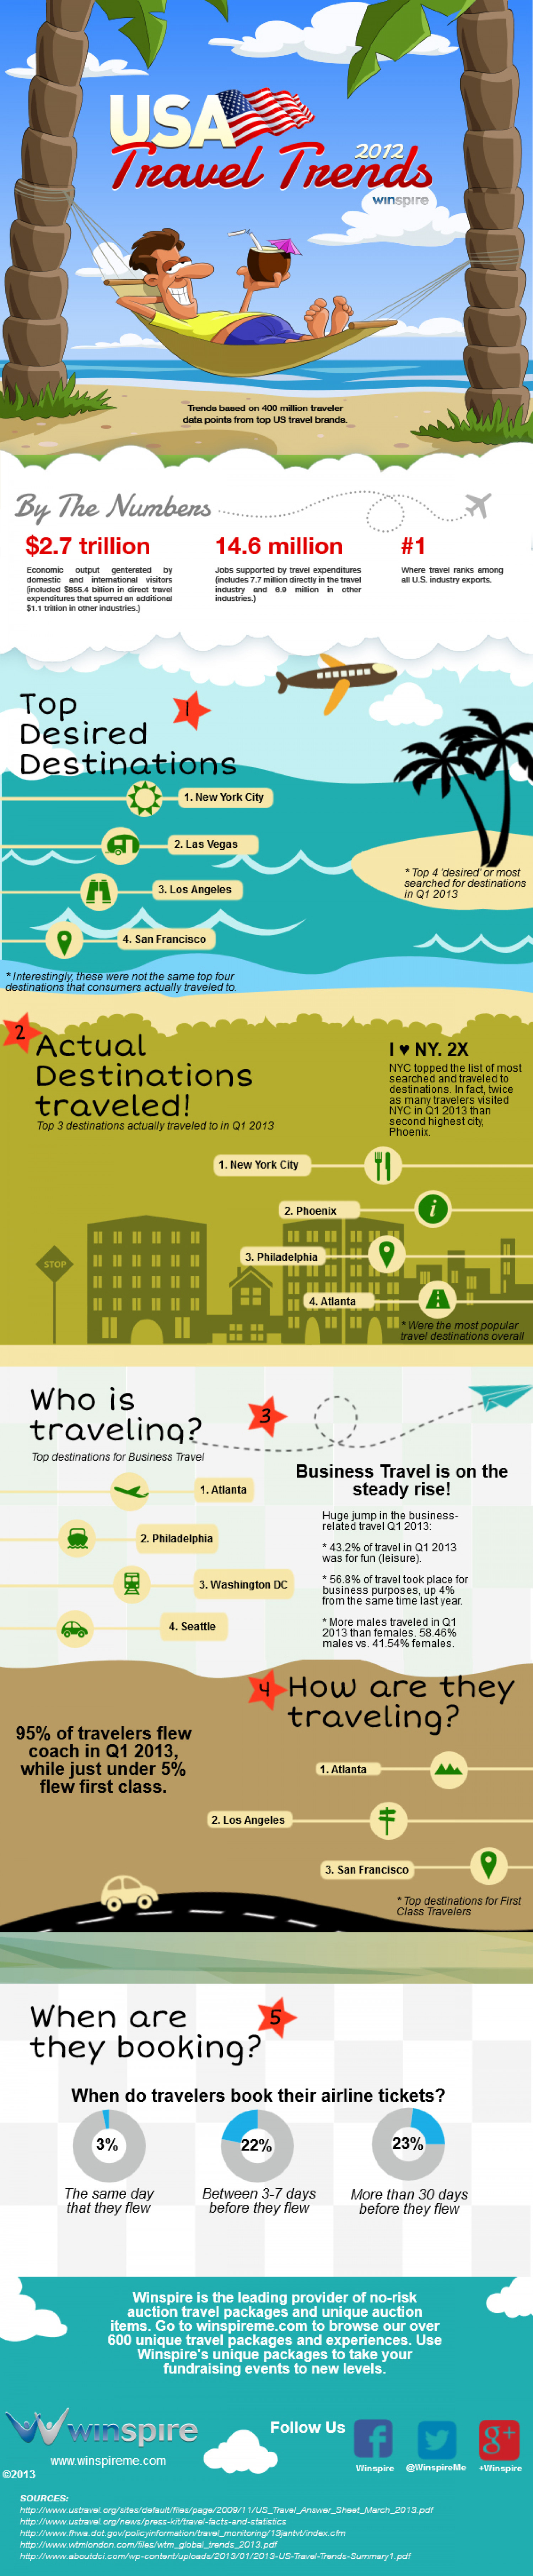 USA Travel Trends 2012 Infographic